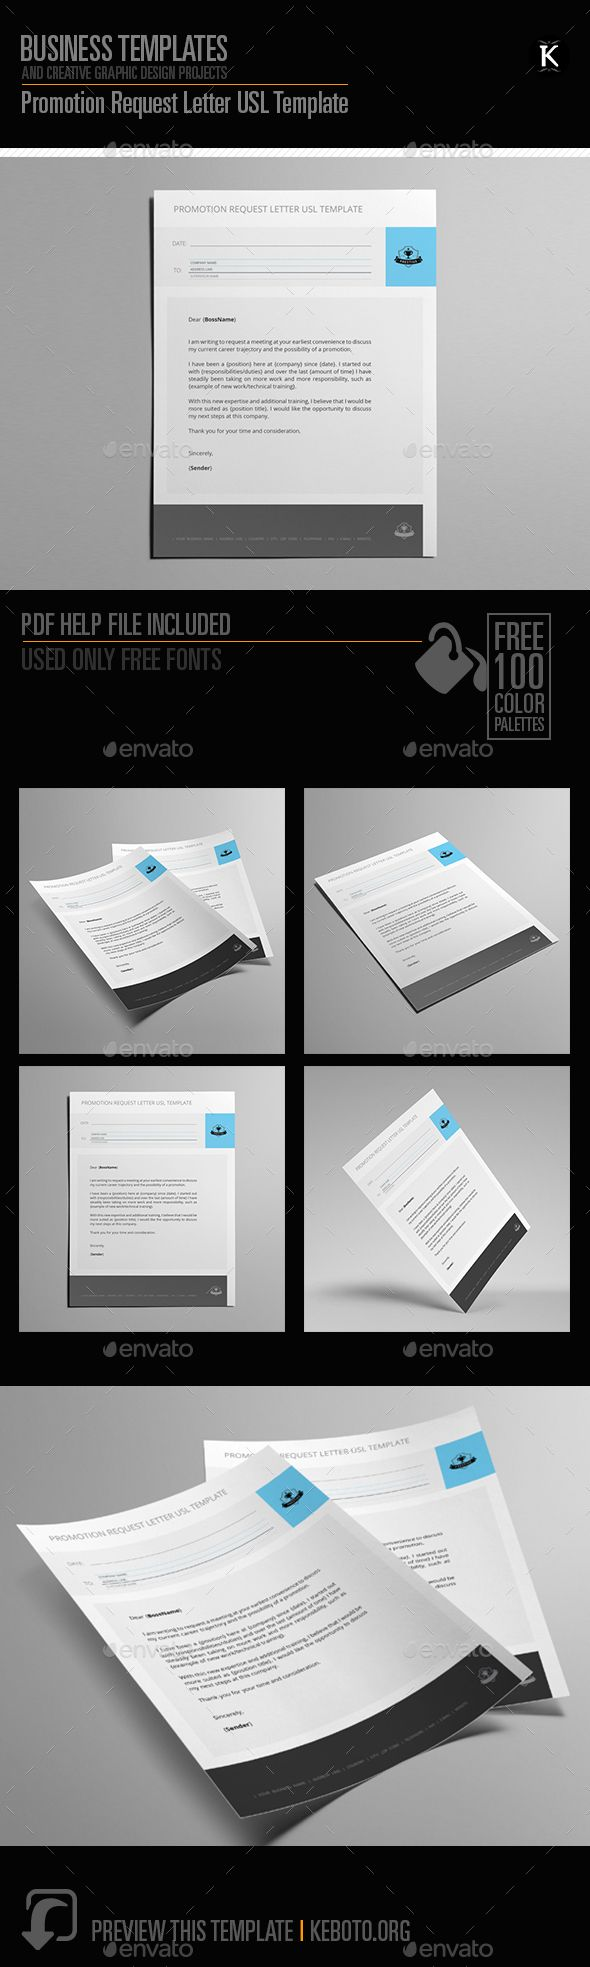 Promotion Request Letter Usl Template  Miscellaneous Print